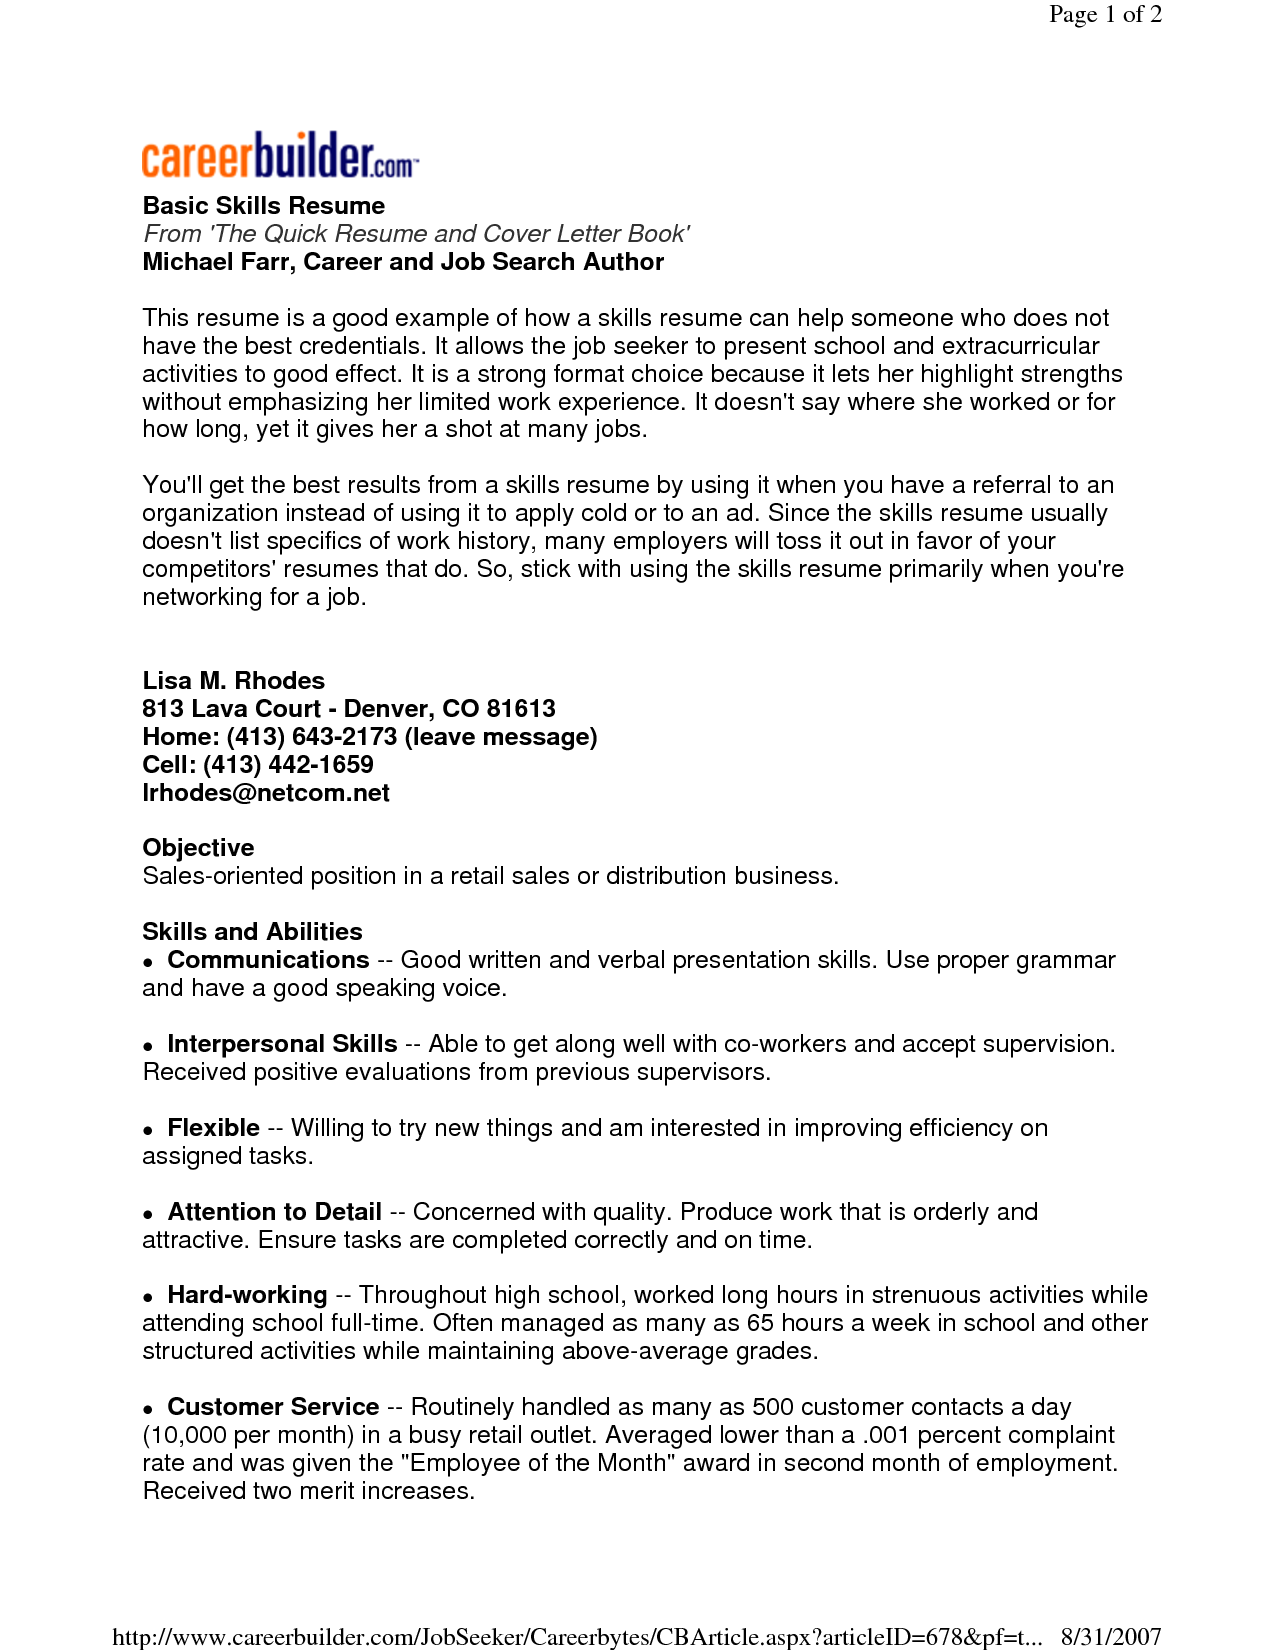 Sample Key Skills For Resume Key Skills 4 Resume Examples Pinterest Sample Resume Resume